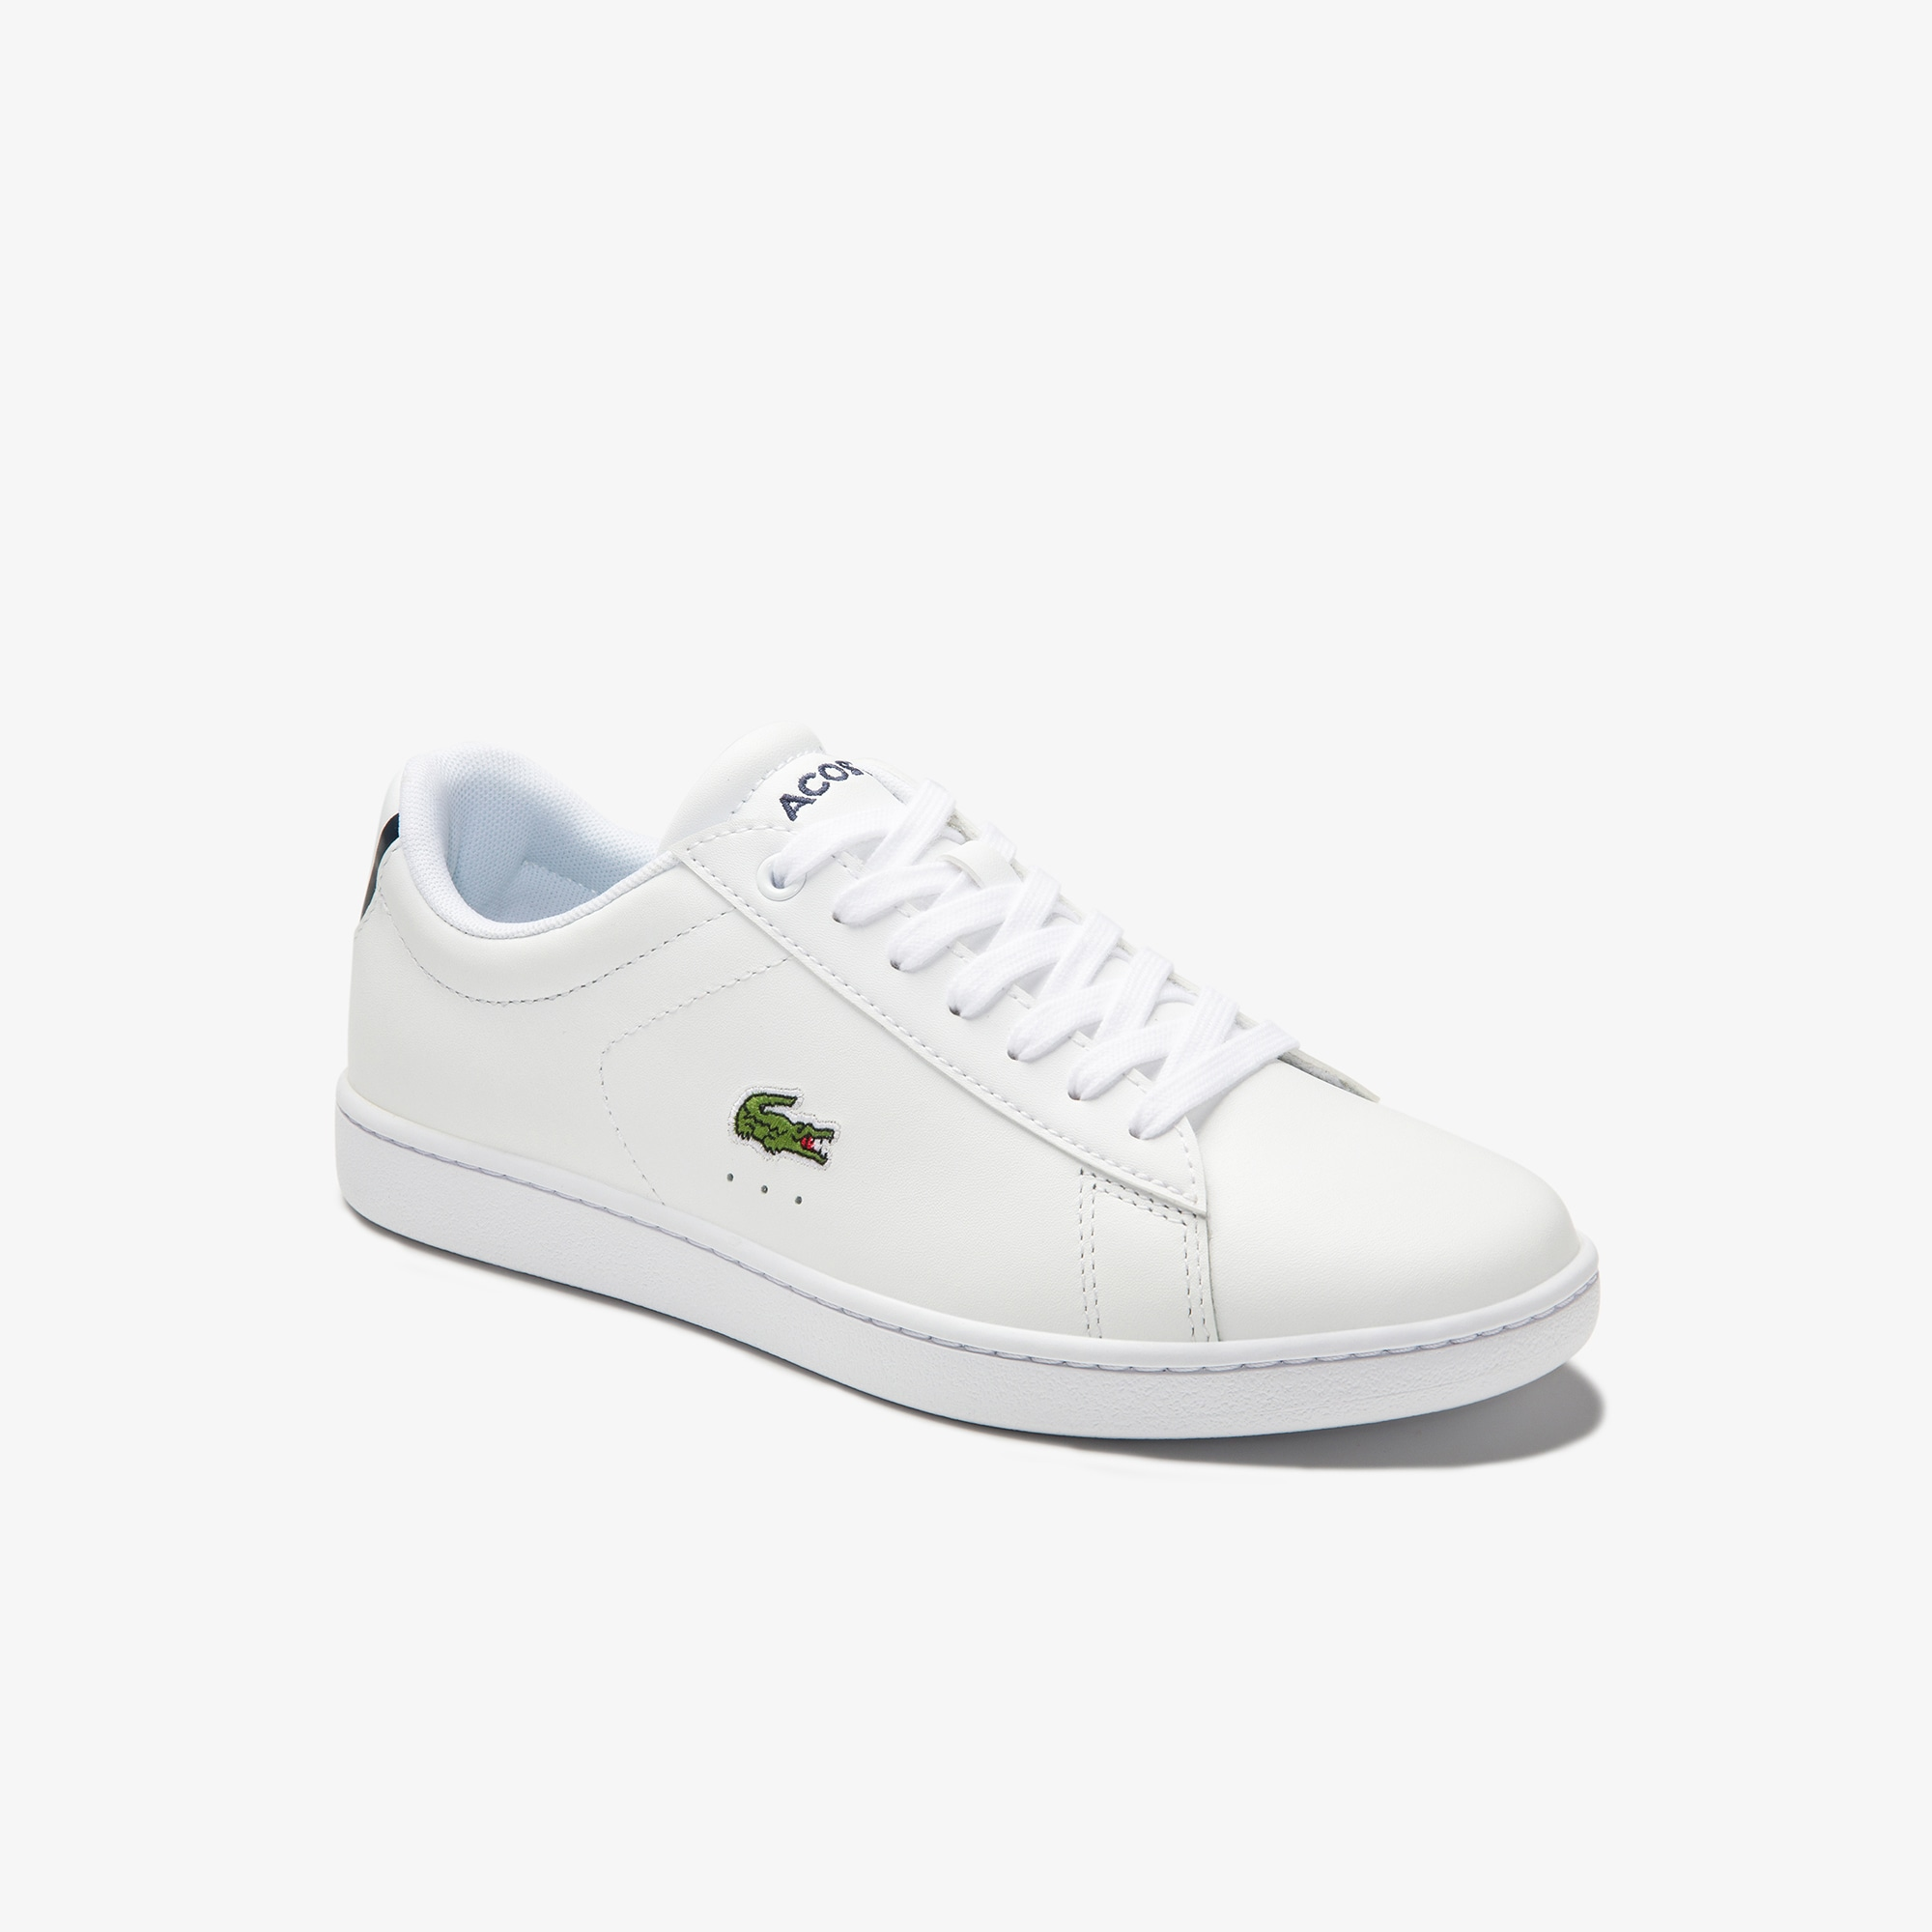 dad43f76147 Lacoste shoes for women  Boots